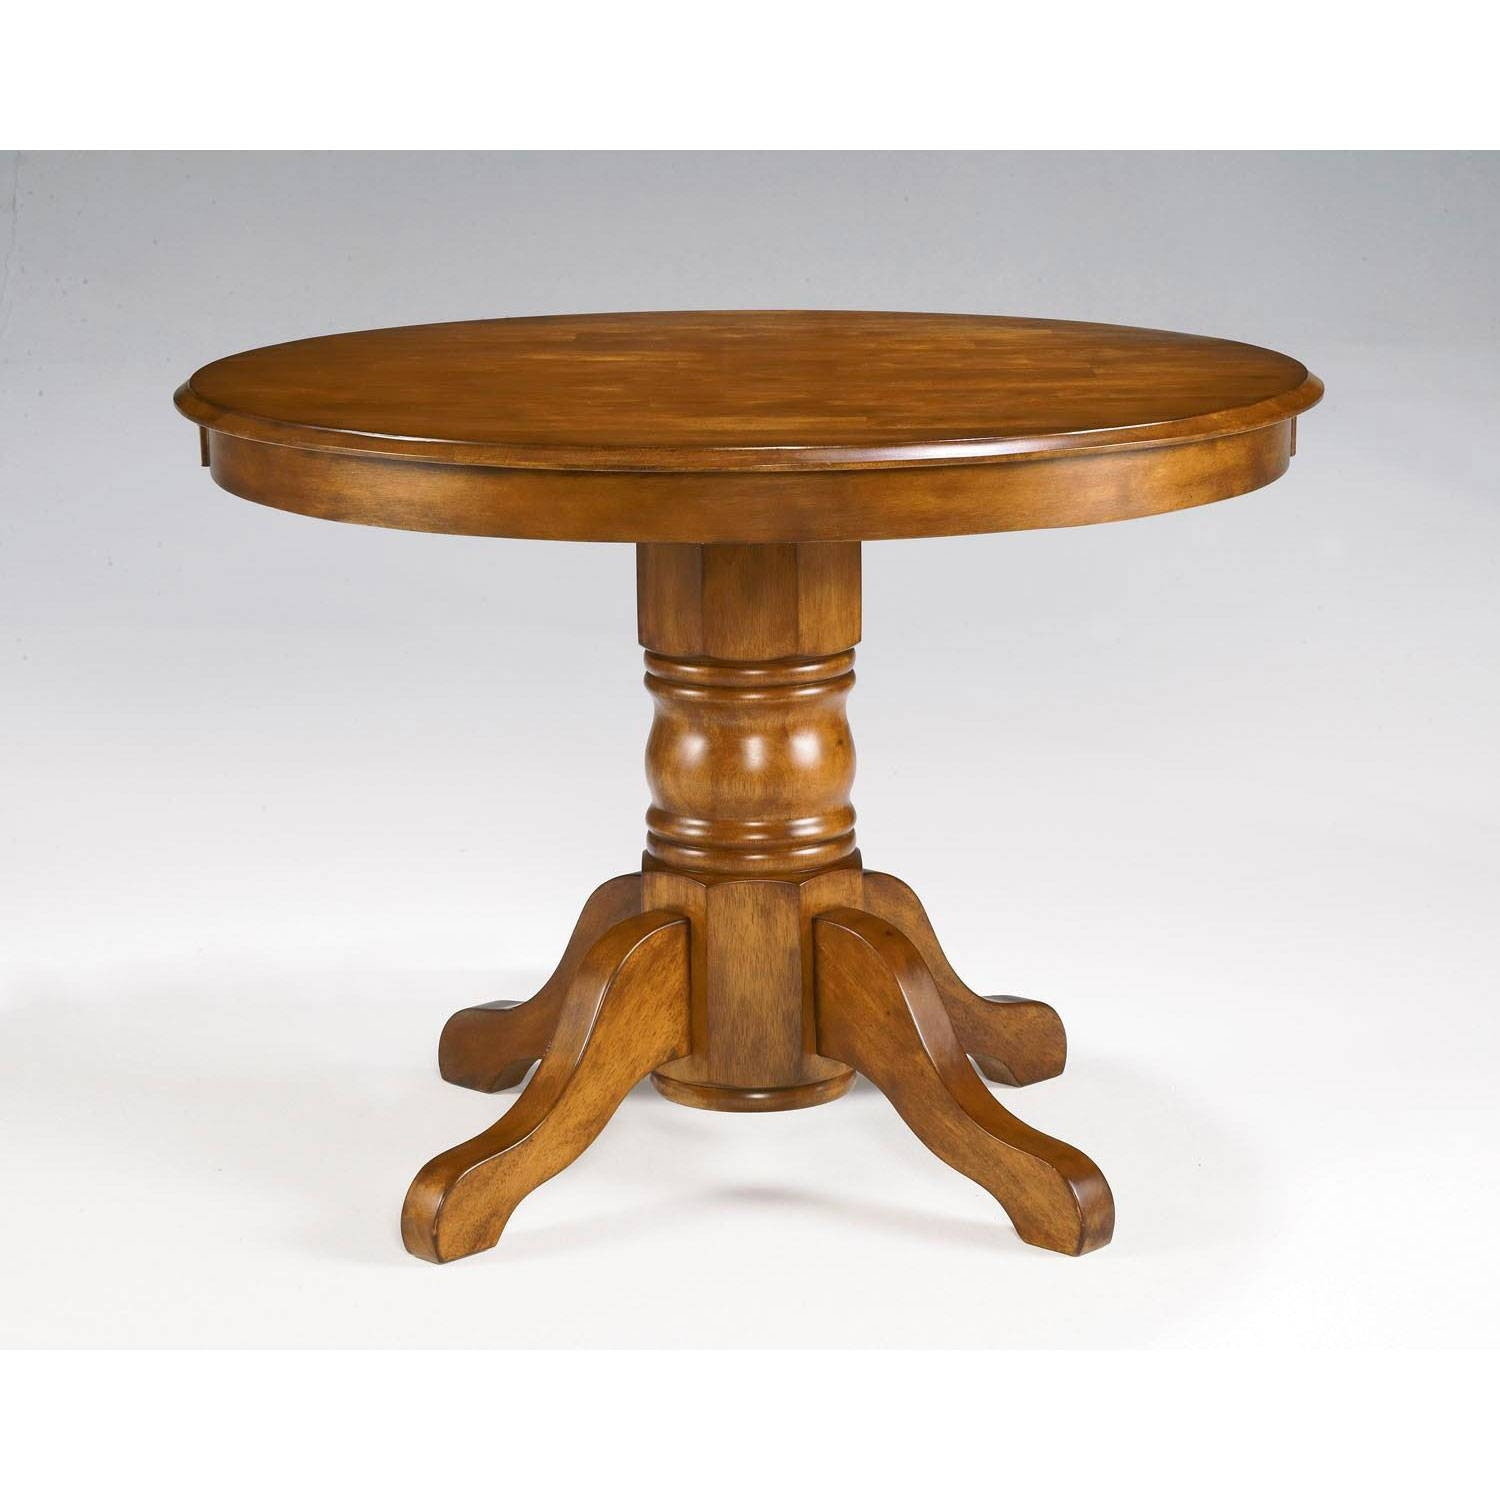 Round Oak Pedestal Coffee Table Including Leick Furniture, Home pertaining to Round Oak Coffee Tables (Image 26 of 30)